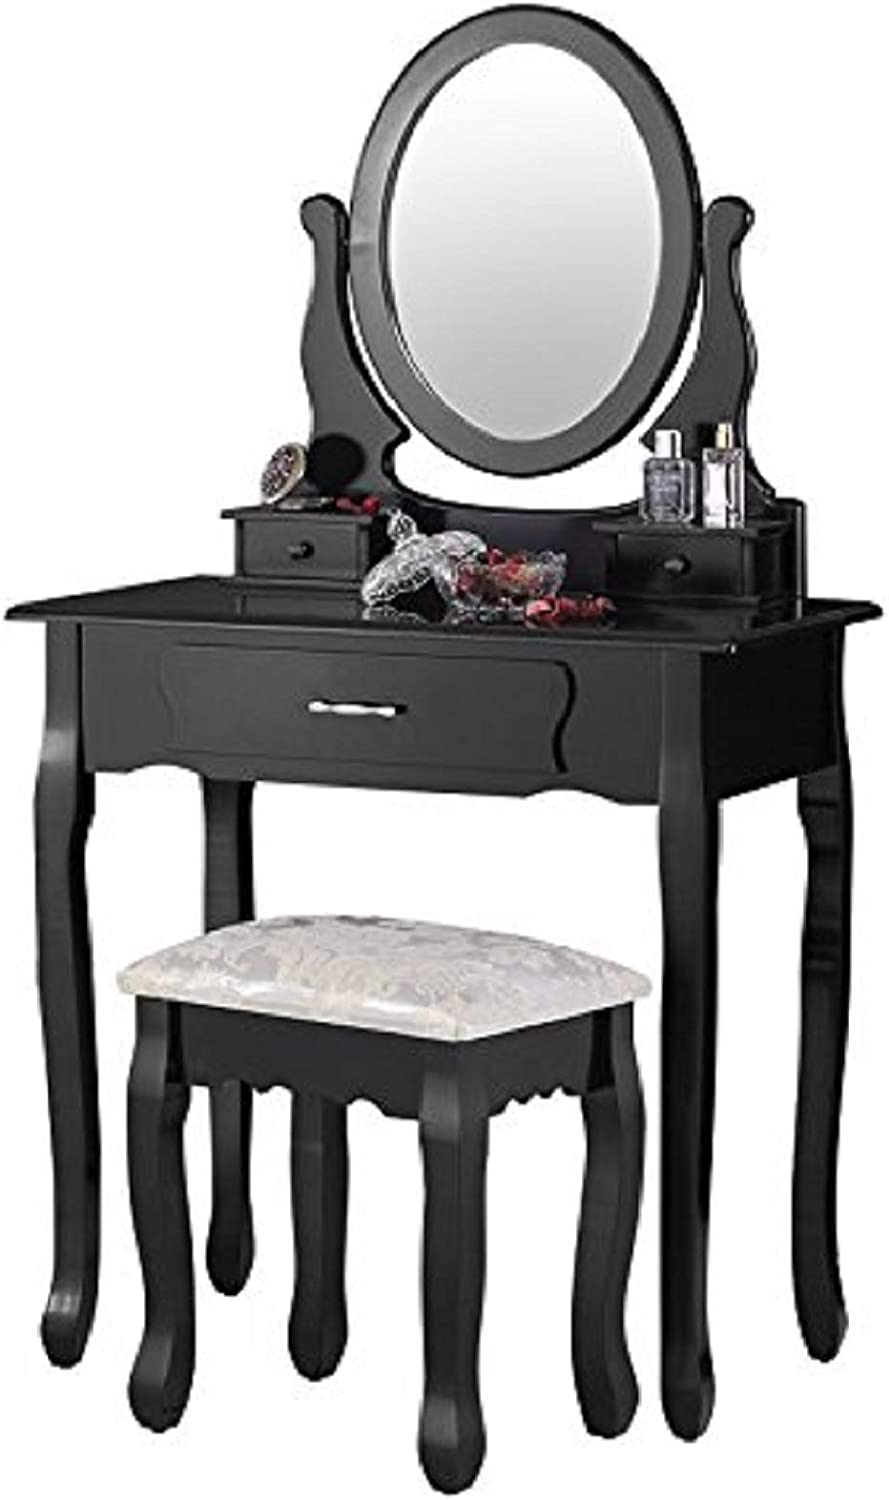 Mecor Vanity Table Set with Oval Mirror,Makeup Table w 3 Drawers Wood Dressing Table and Cushioned Stool Girls Women Bedroom Bathroom Furniture Black